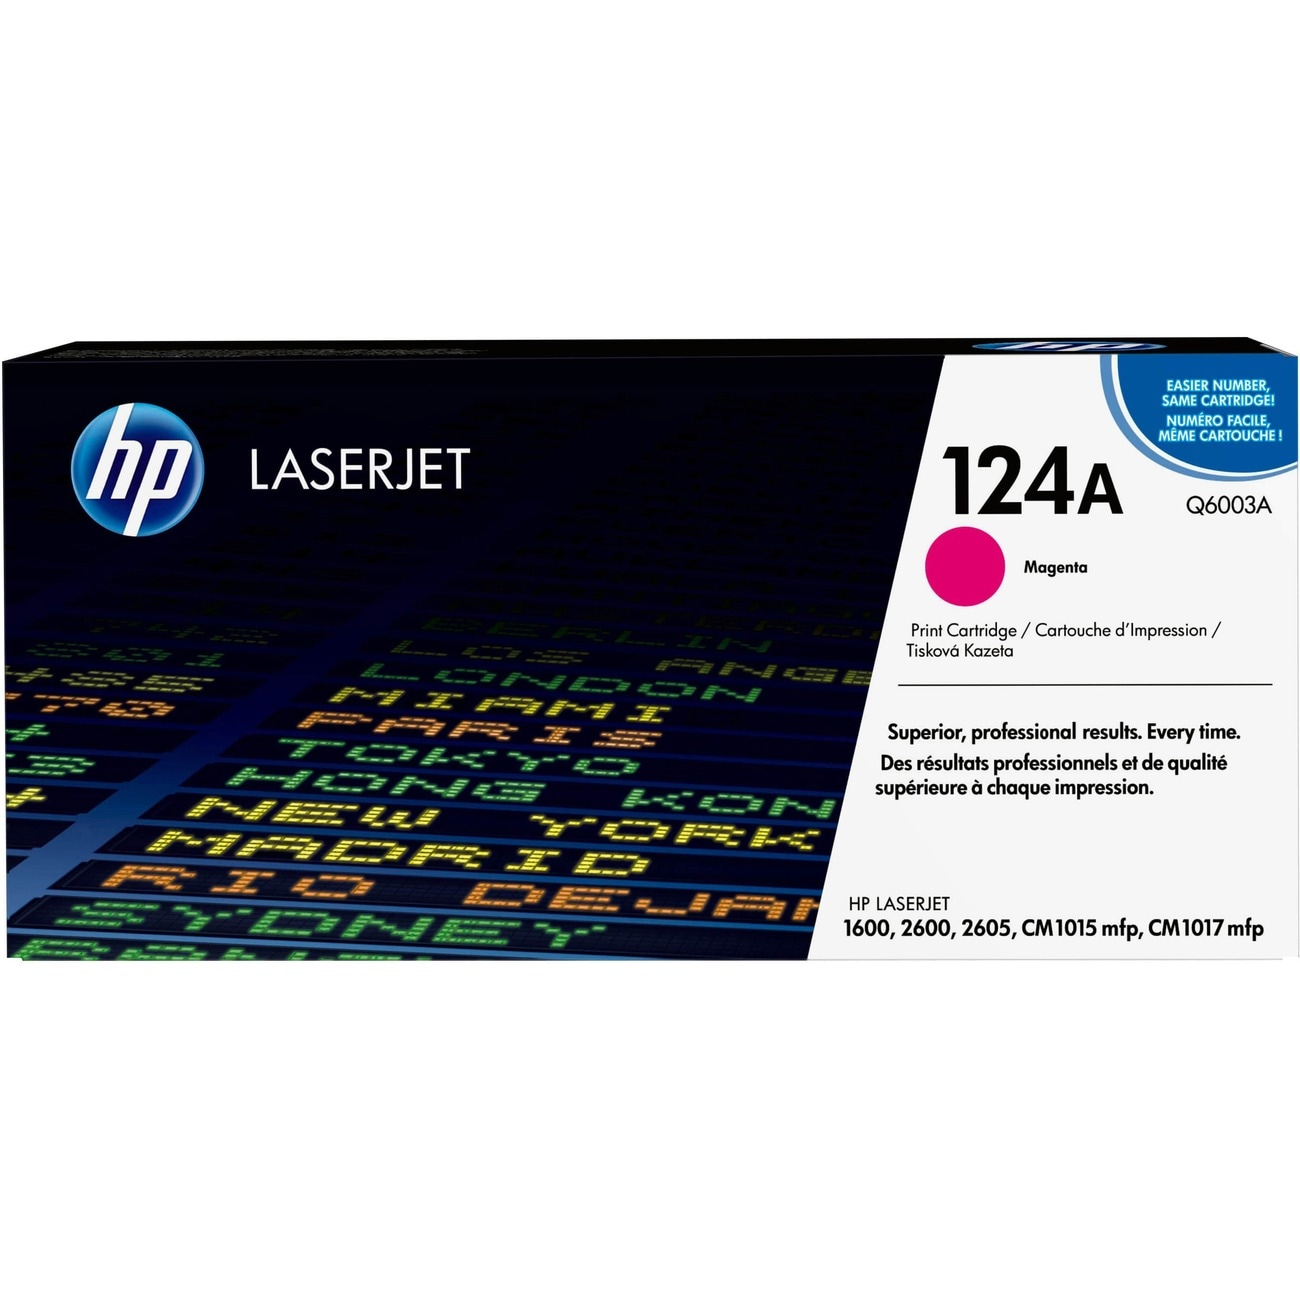 HP Toner Cartridge (Magenta) - Thumbnail 0